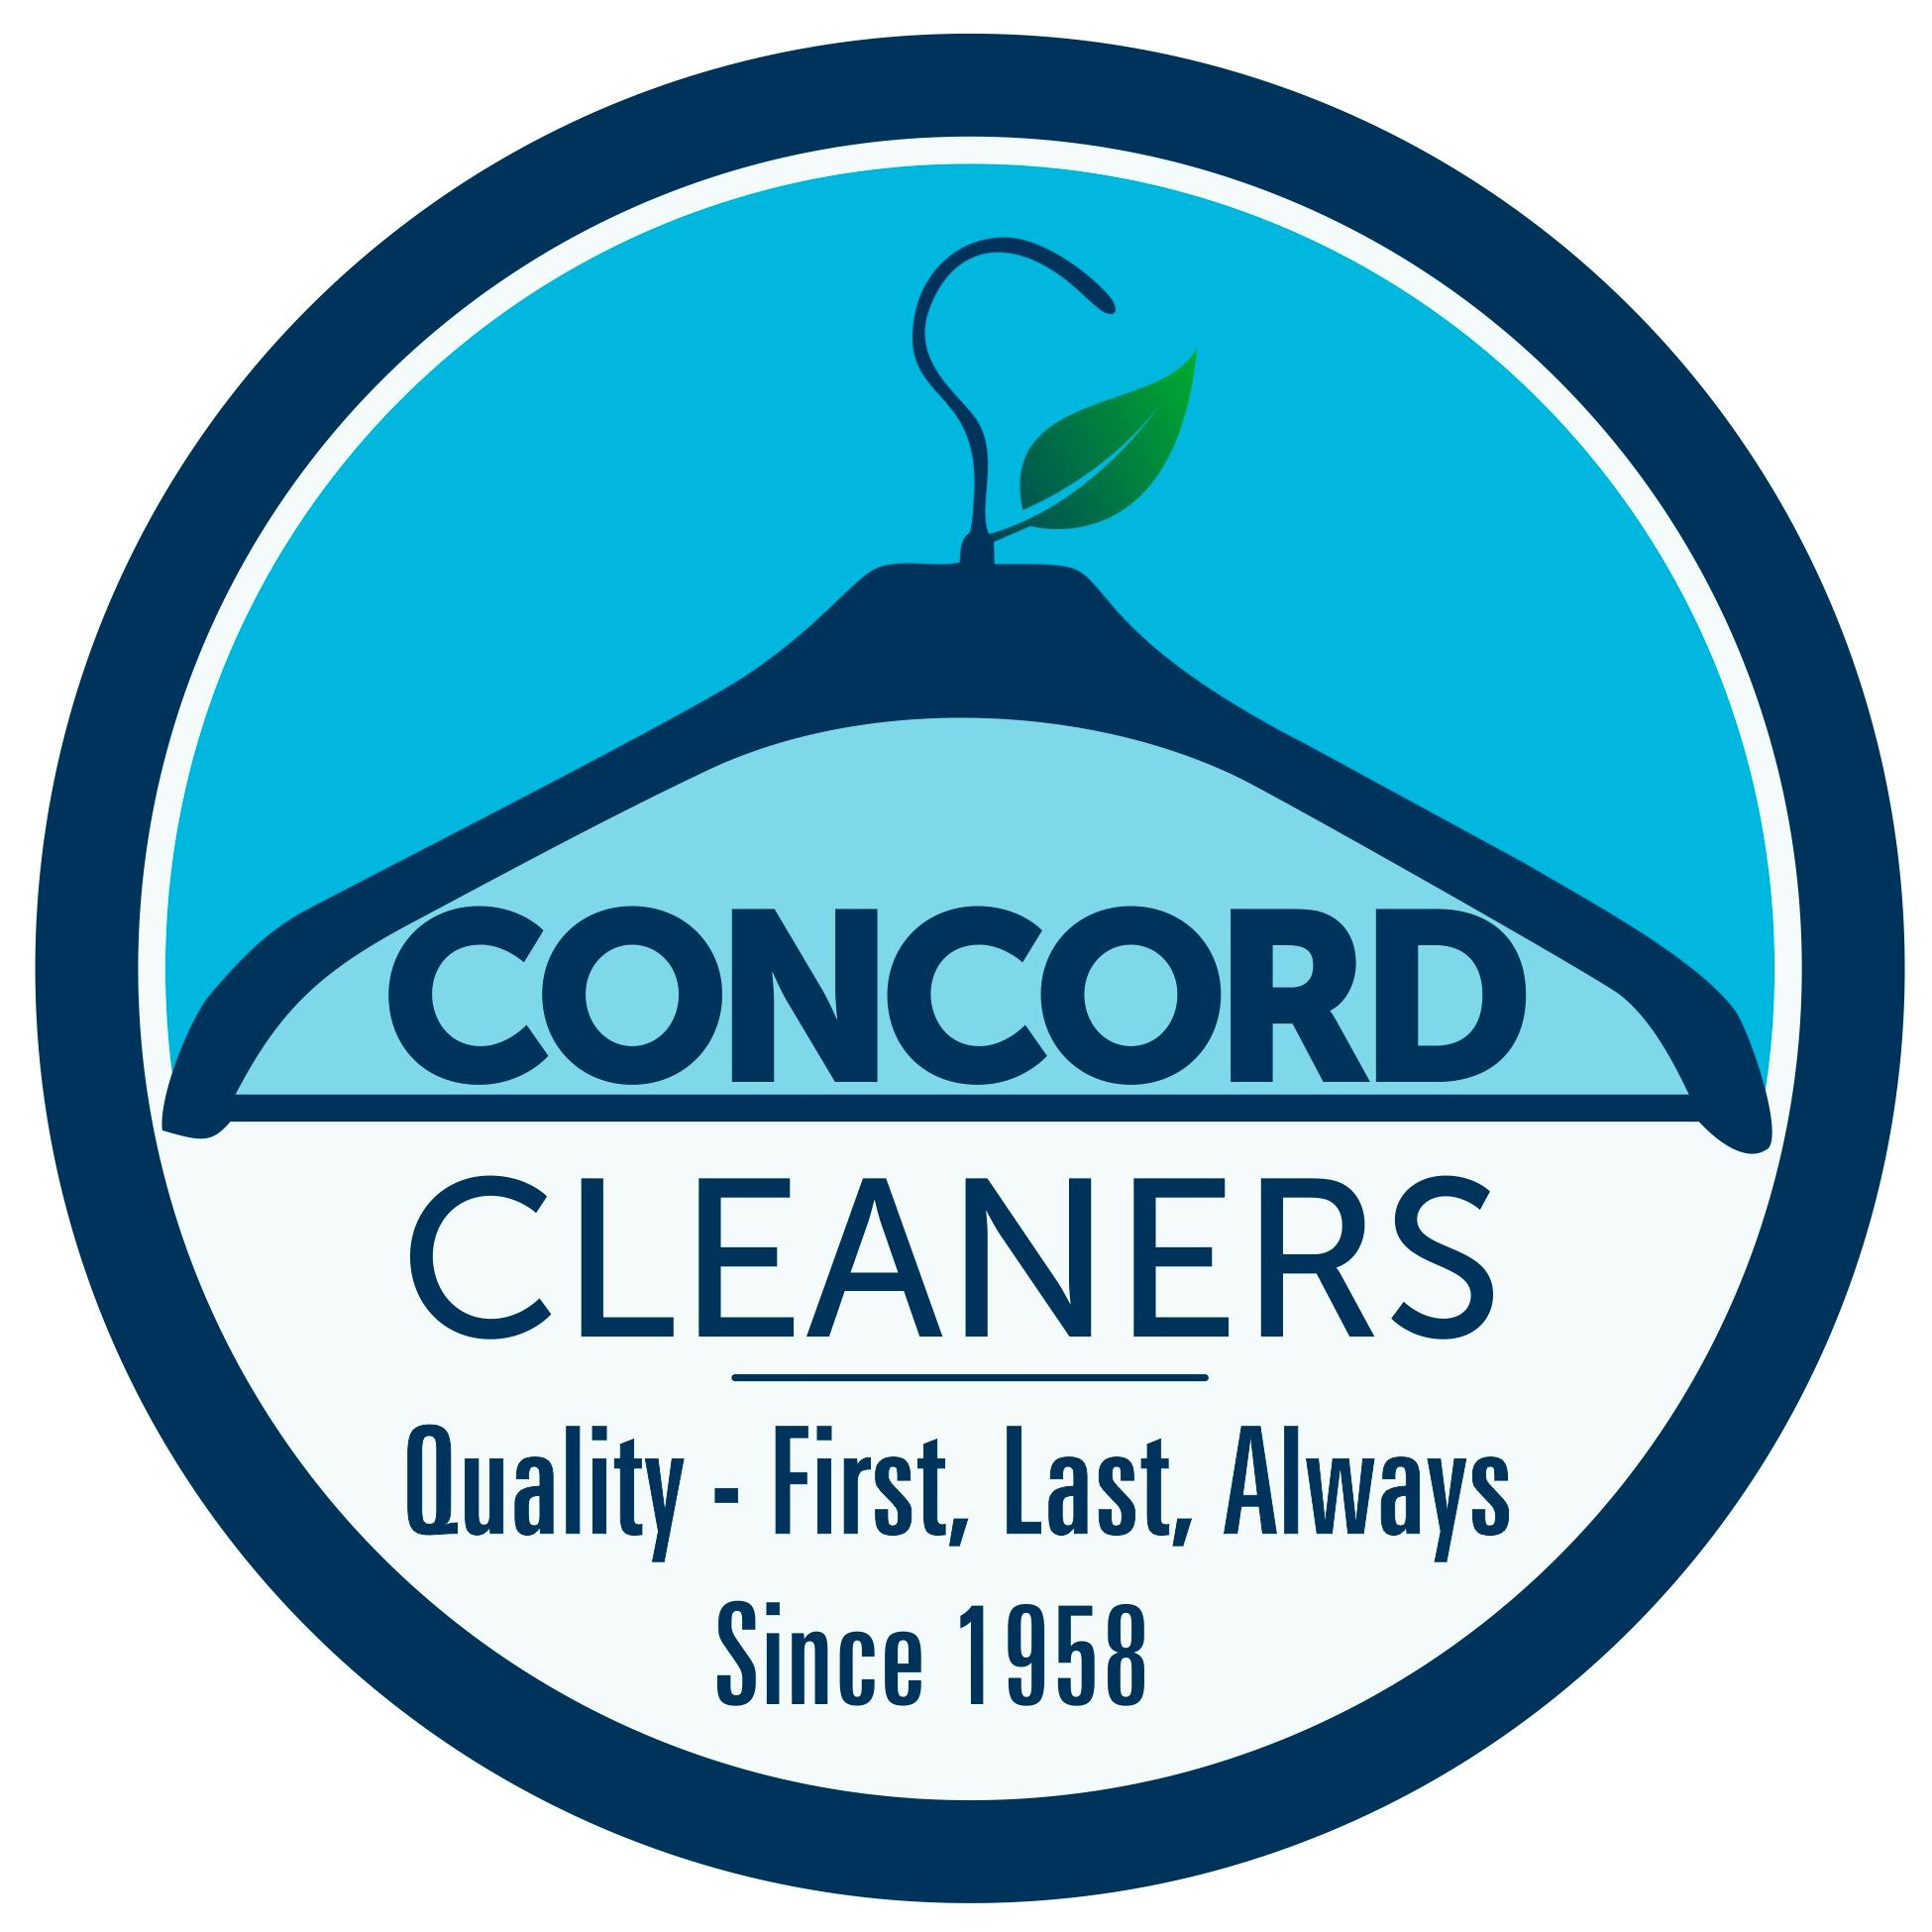 Concord Cleaners - St. Louis, MO - Laundry & Dry Cleaning